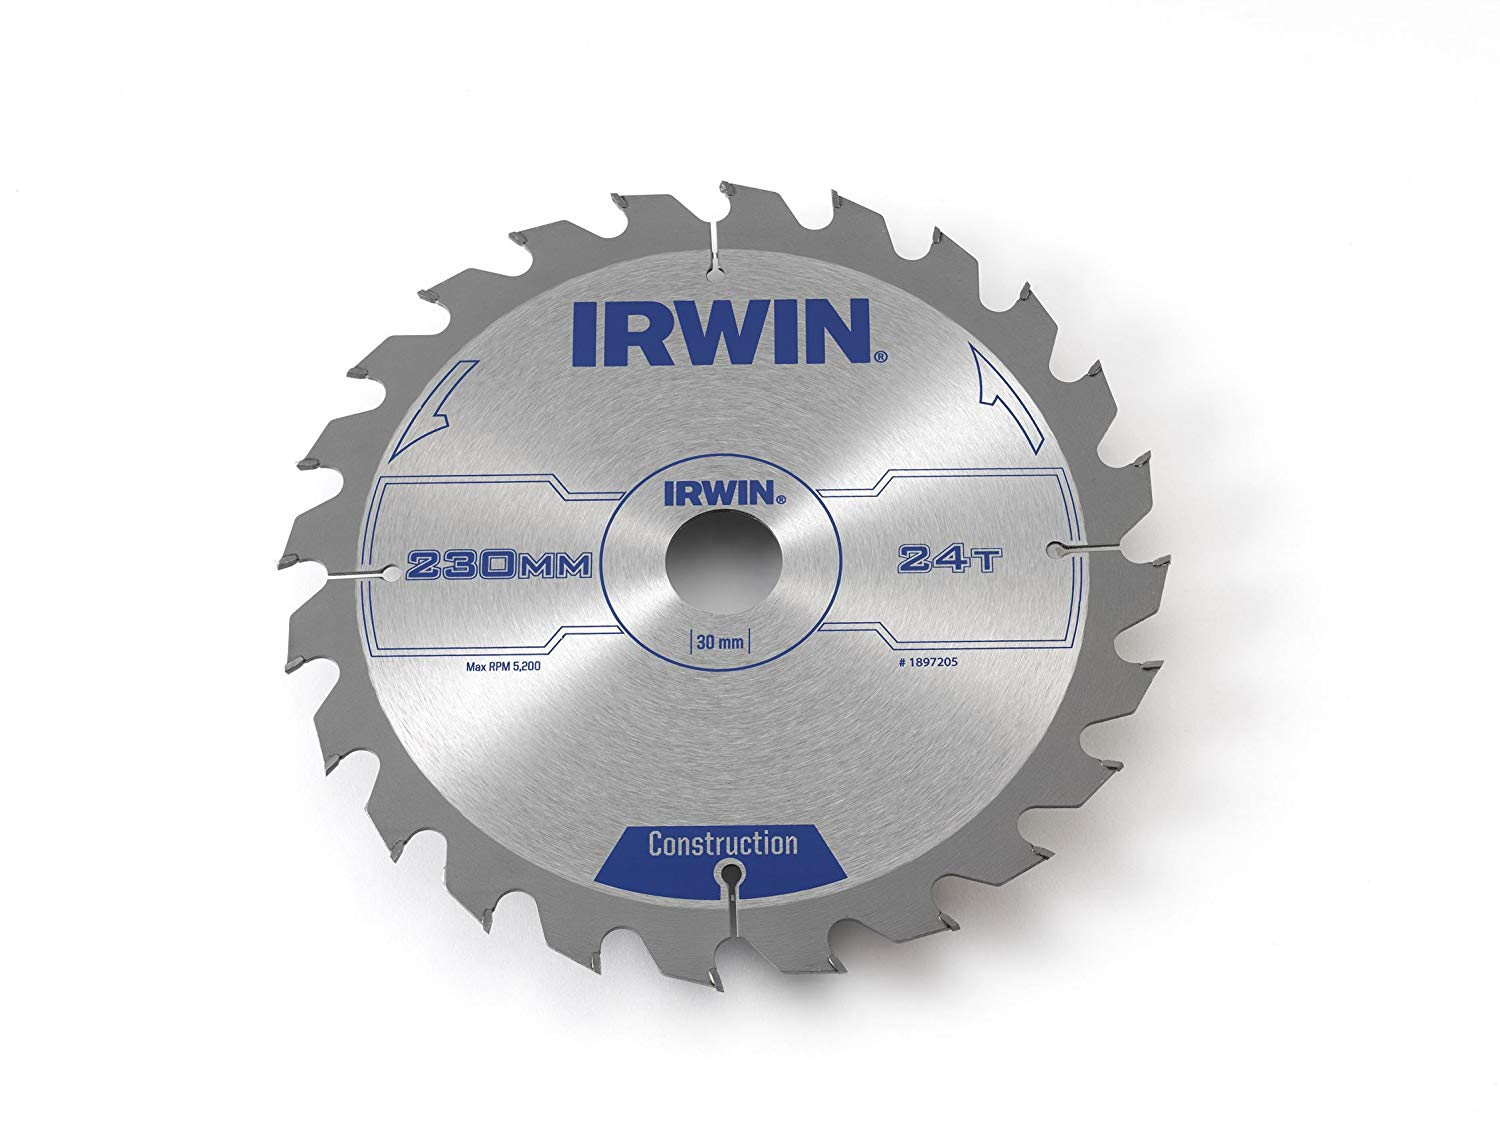 IRWIN 1907699 Construction Circular Saw Blade 184 x 16mm x 24T ATB